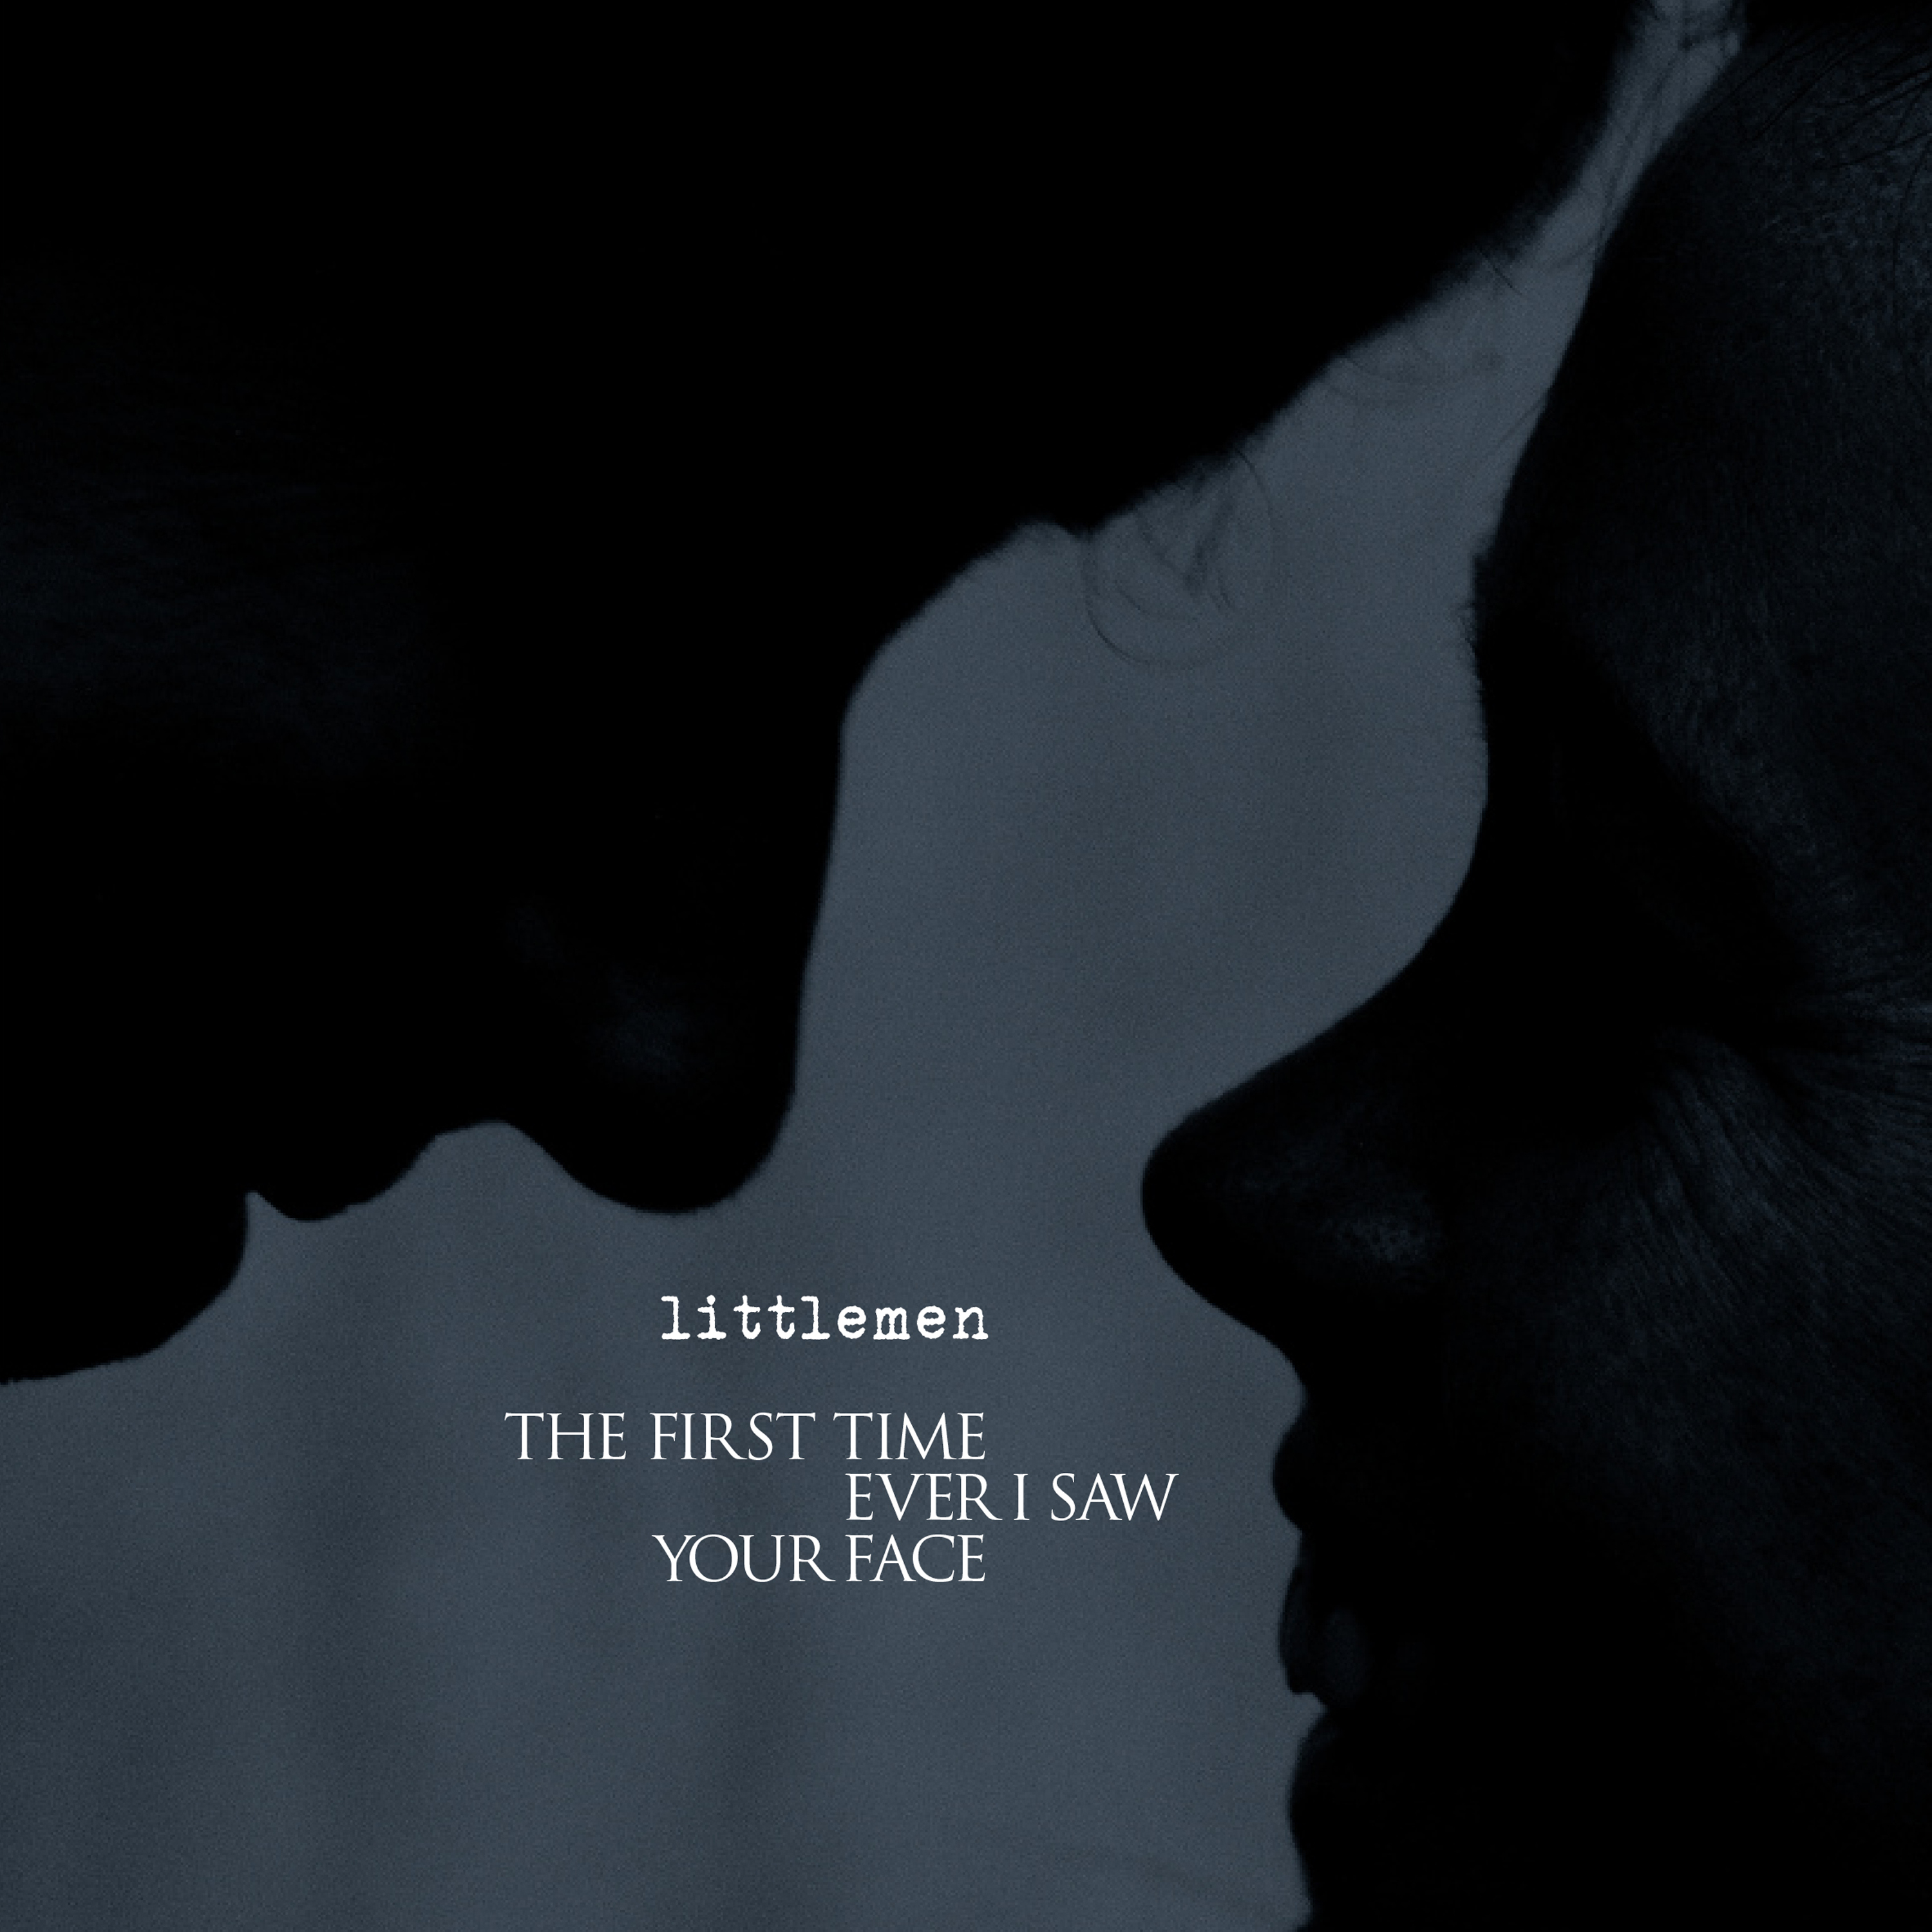 The First Time Ever I Saw Your Face - littlemen